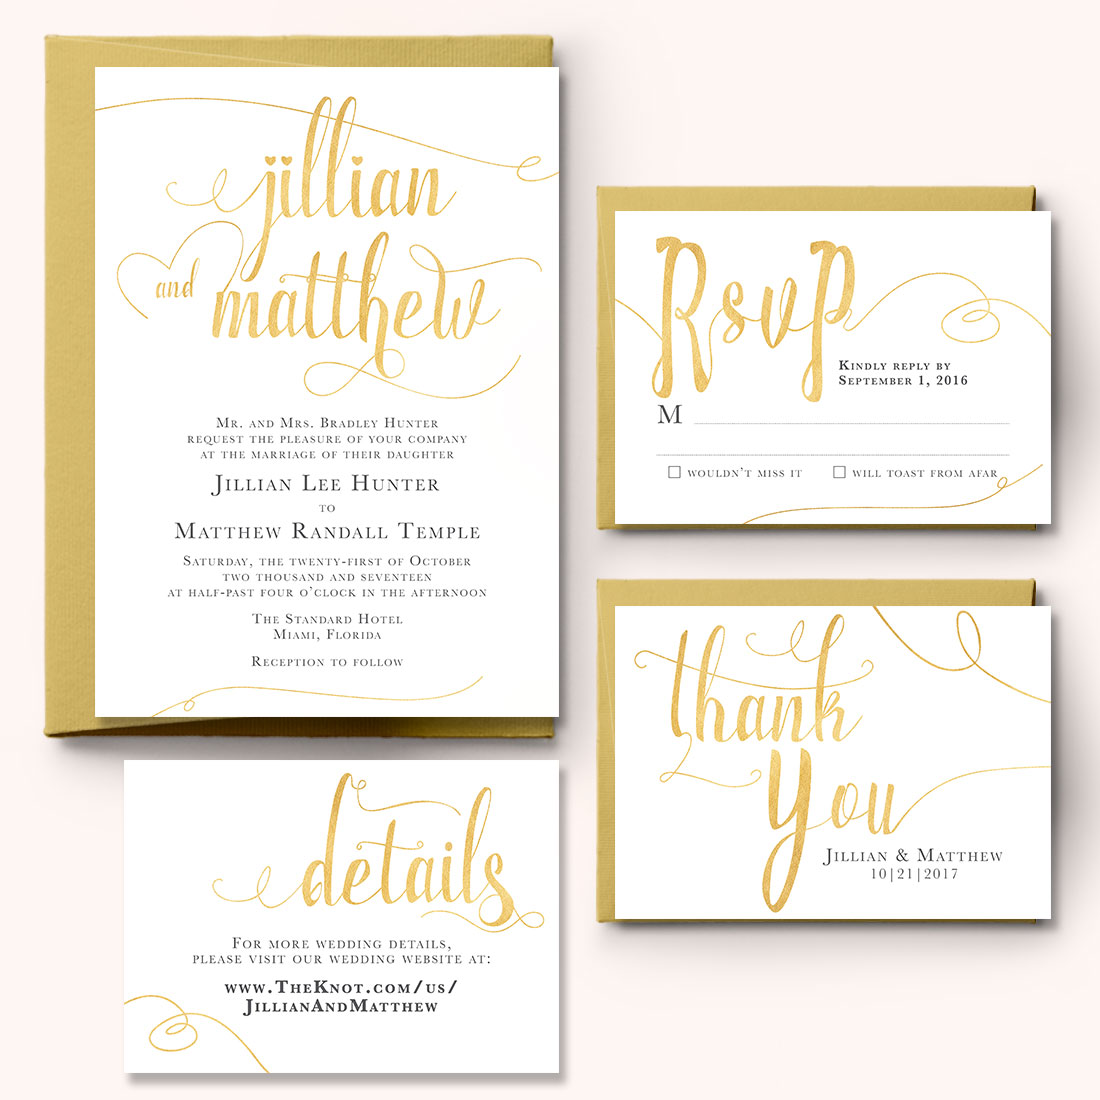 White And Gold Wedding Invitation Set Charming Chestnuts